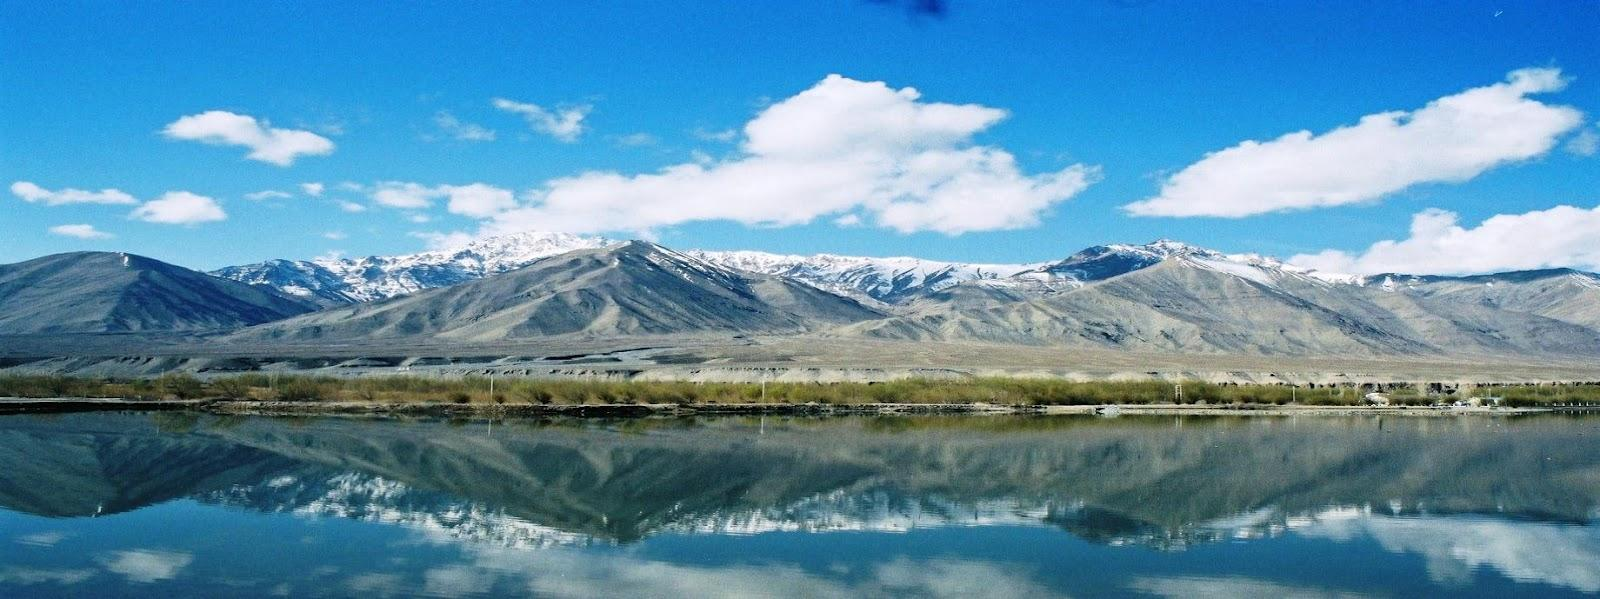 Jammu Kashmir holiday packages from Hyderabad, Family Holiday packages from  Hyd to Jammu Kashmir, Tour operators for Jammu Kashmir